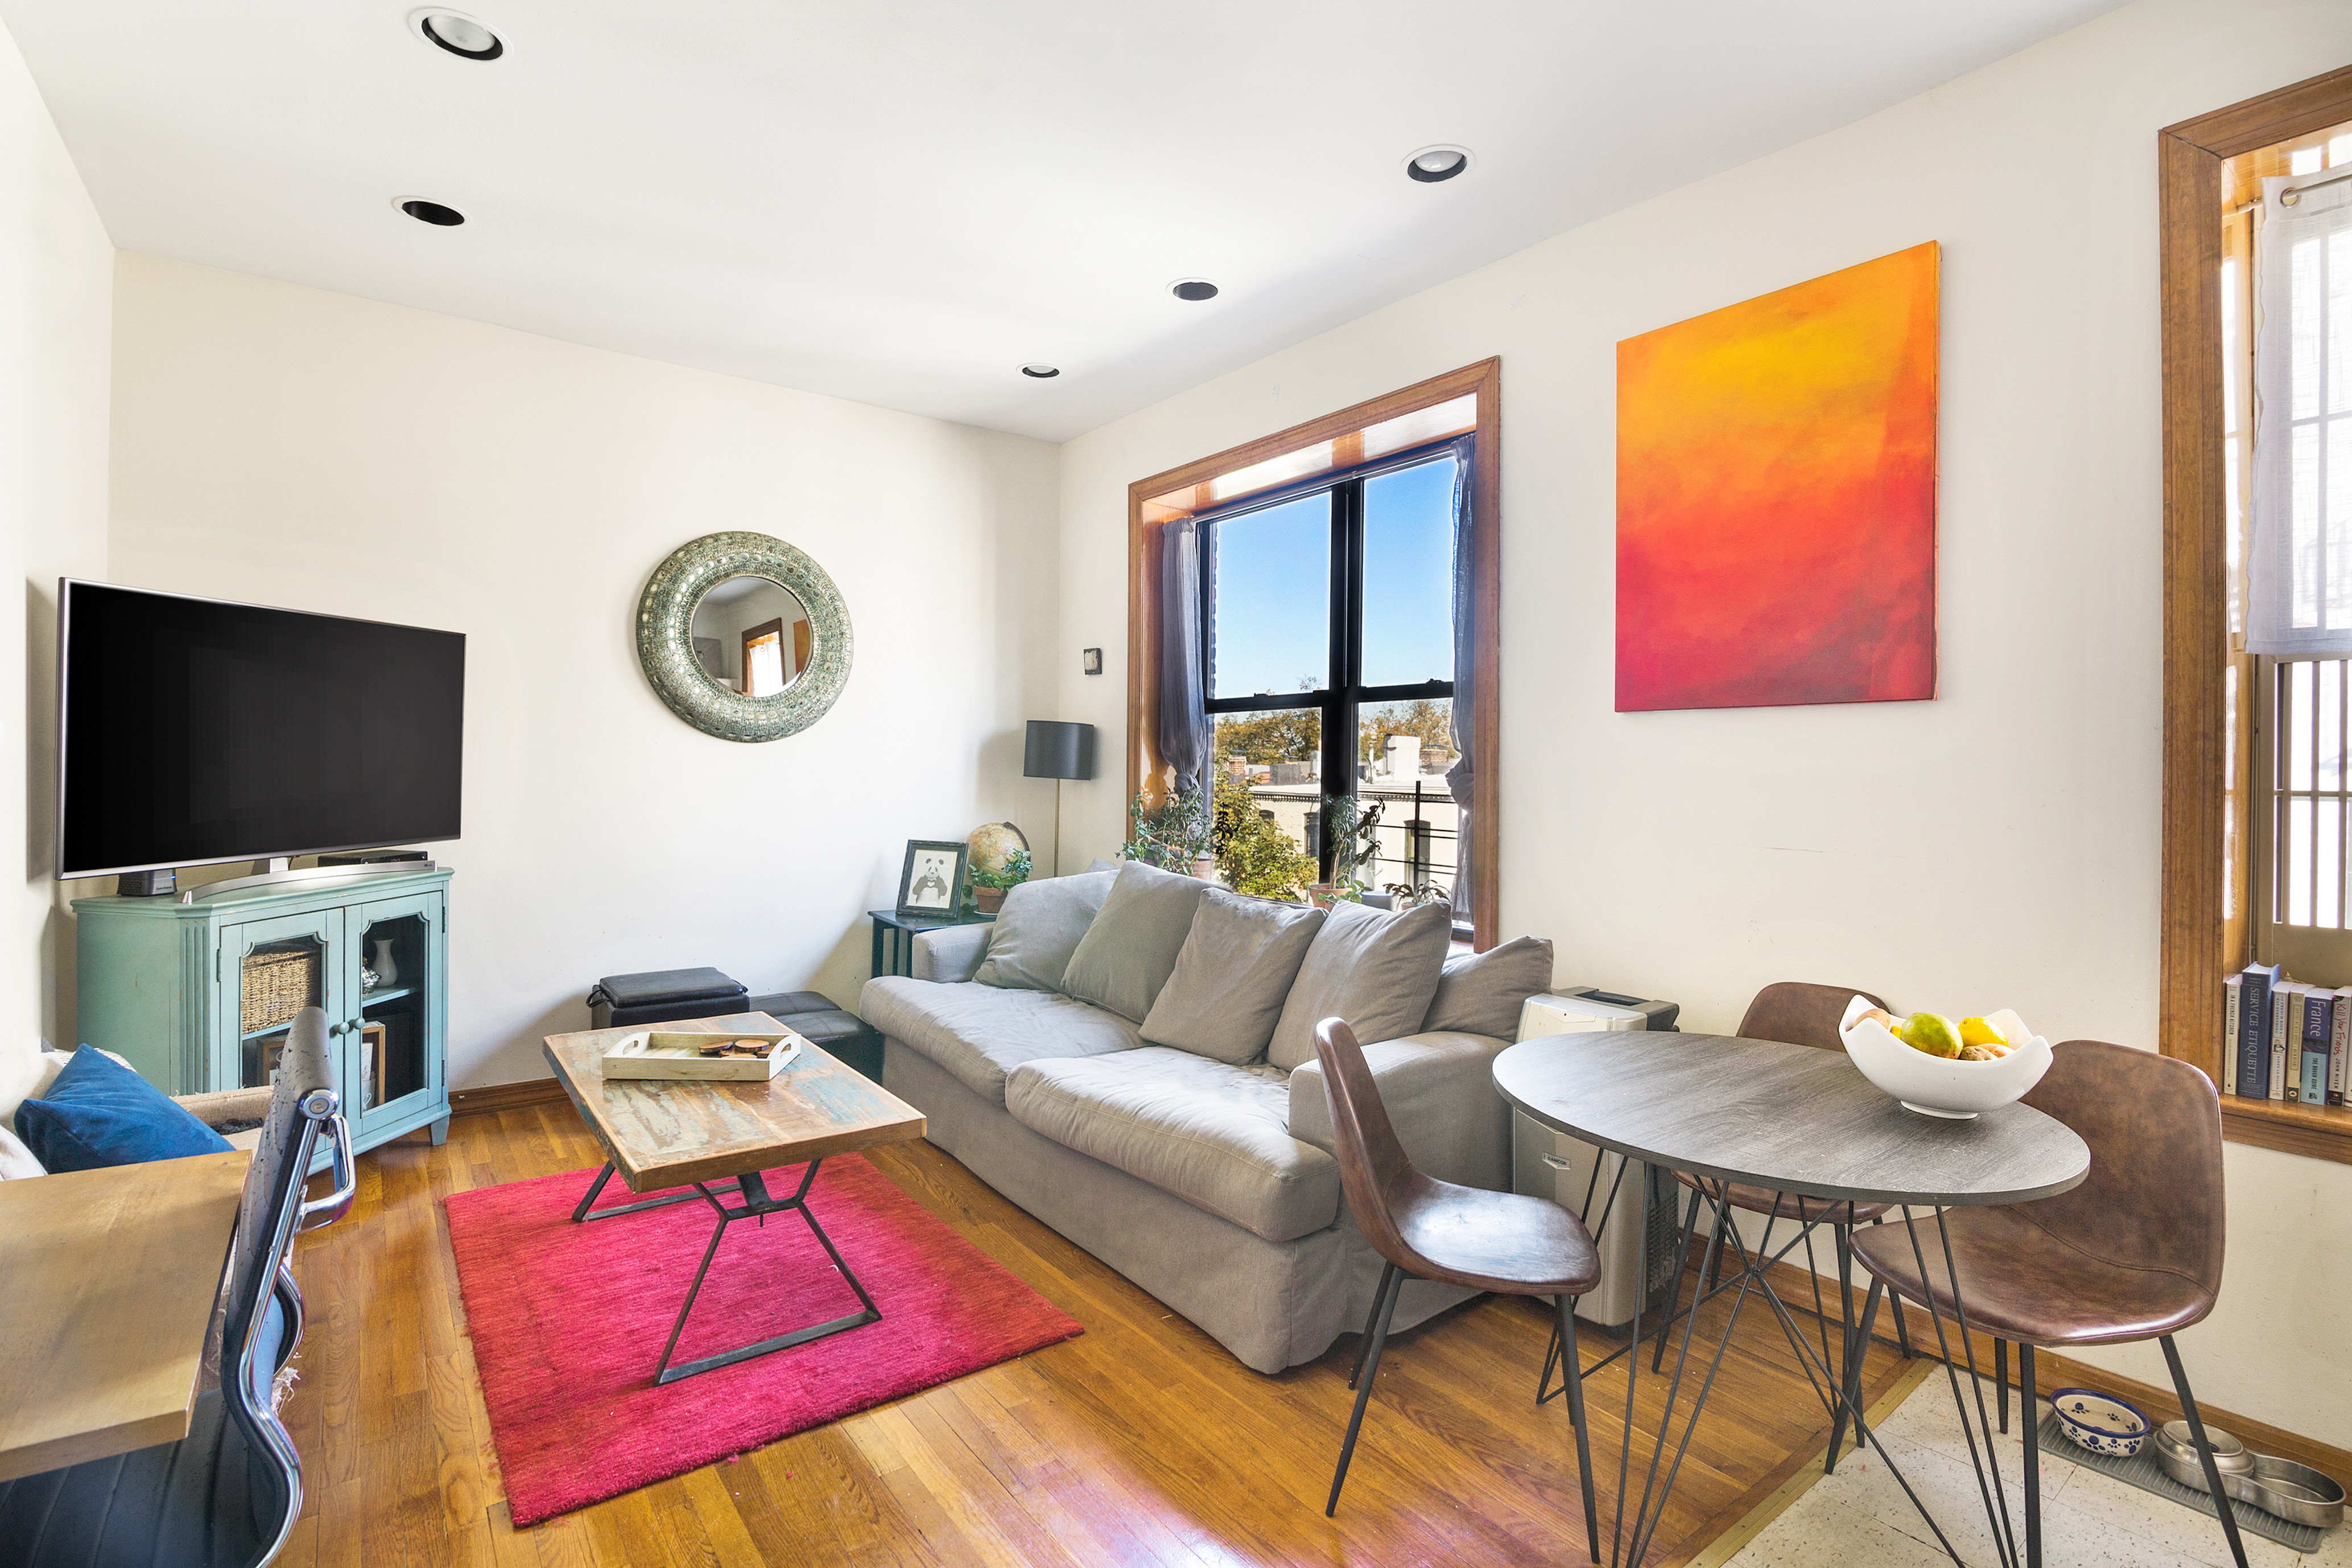 A living room with hardwood floors, a grey couch, a pink rug, a coffee table, and a round dining table with three chairs.